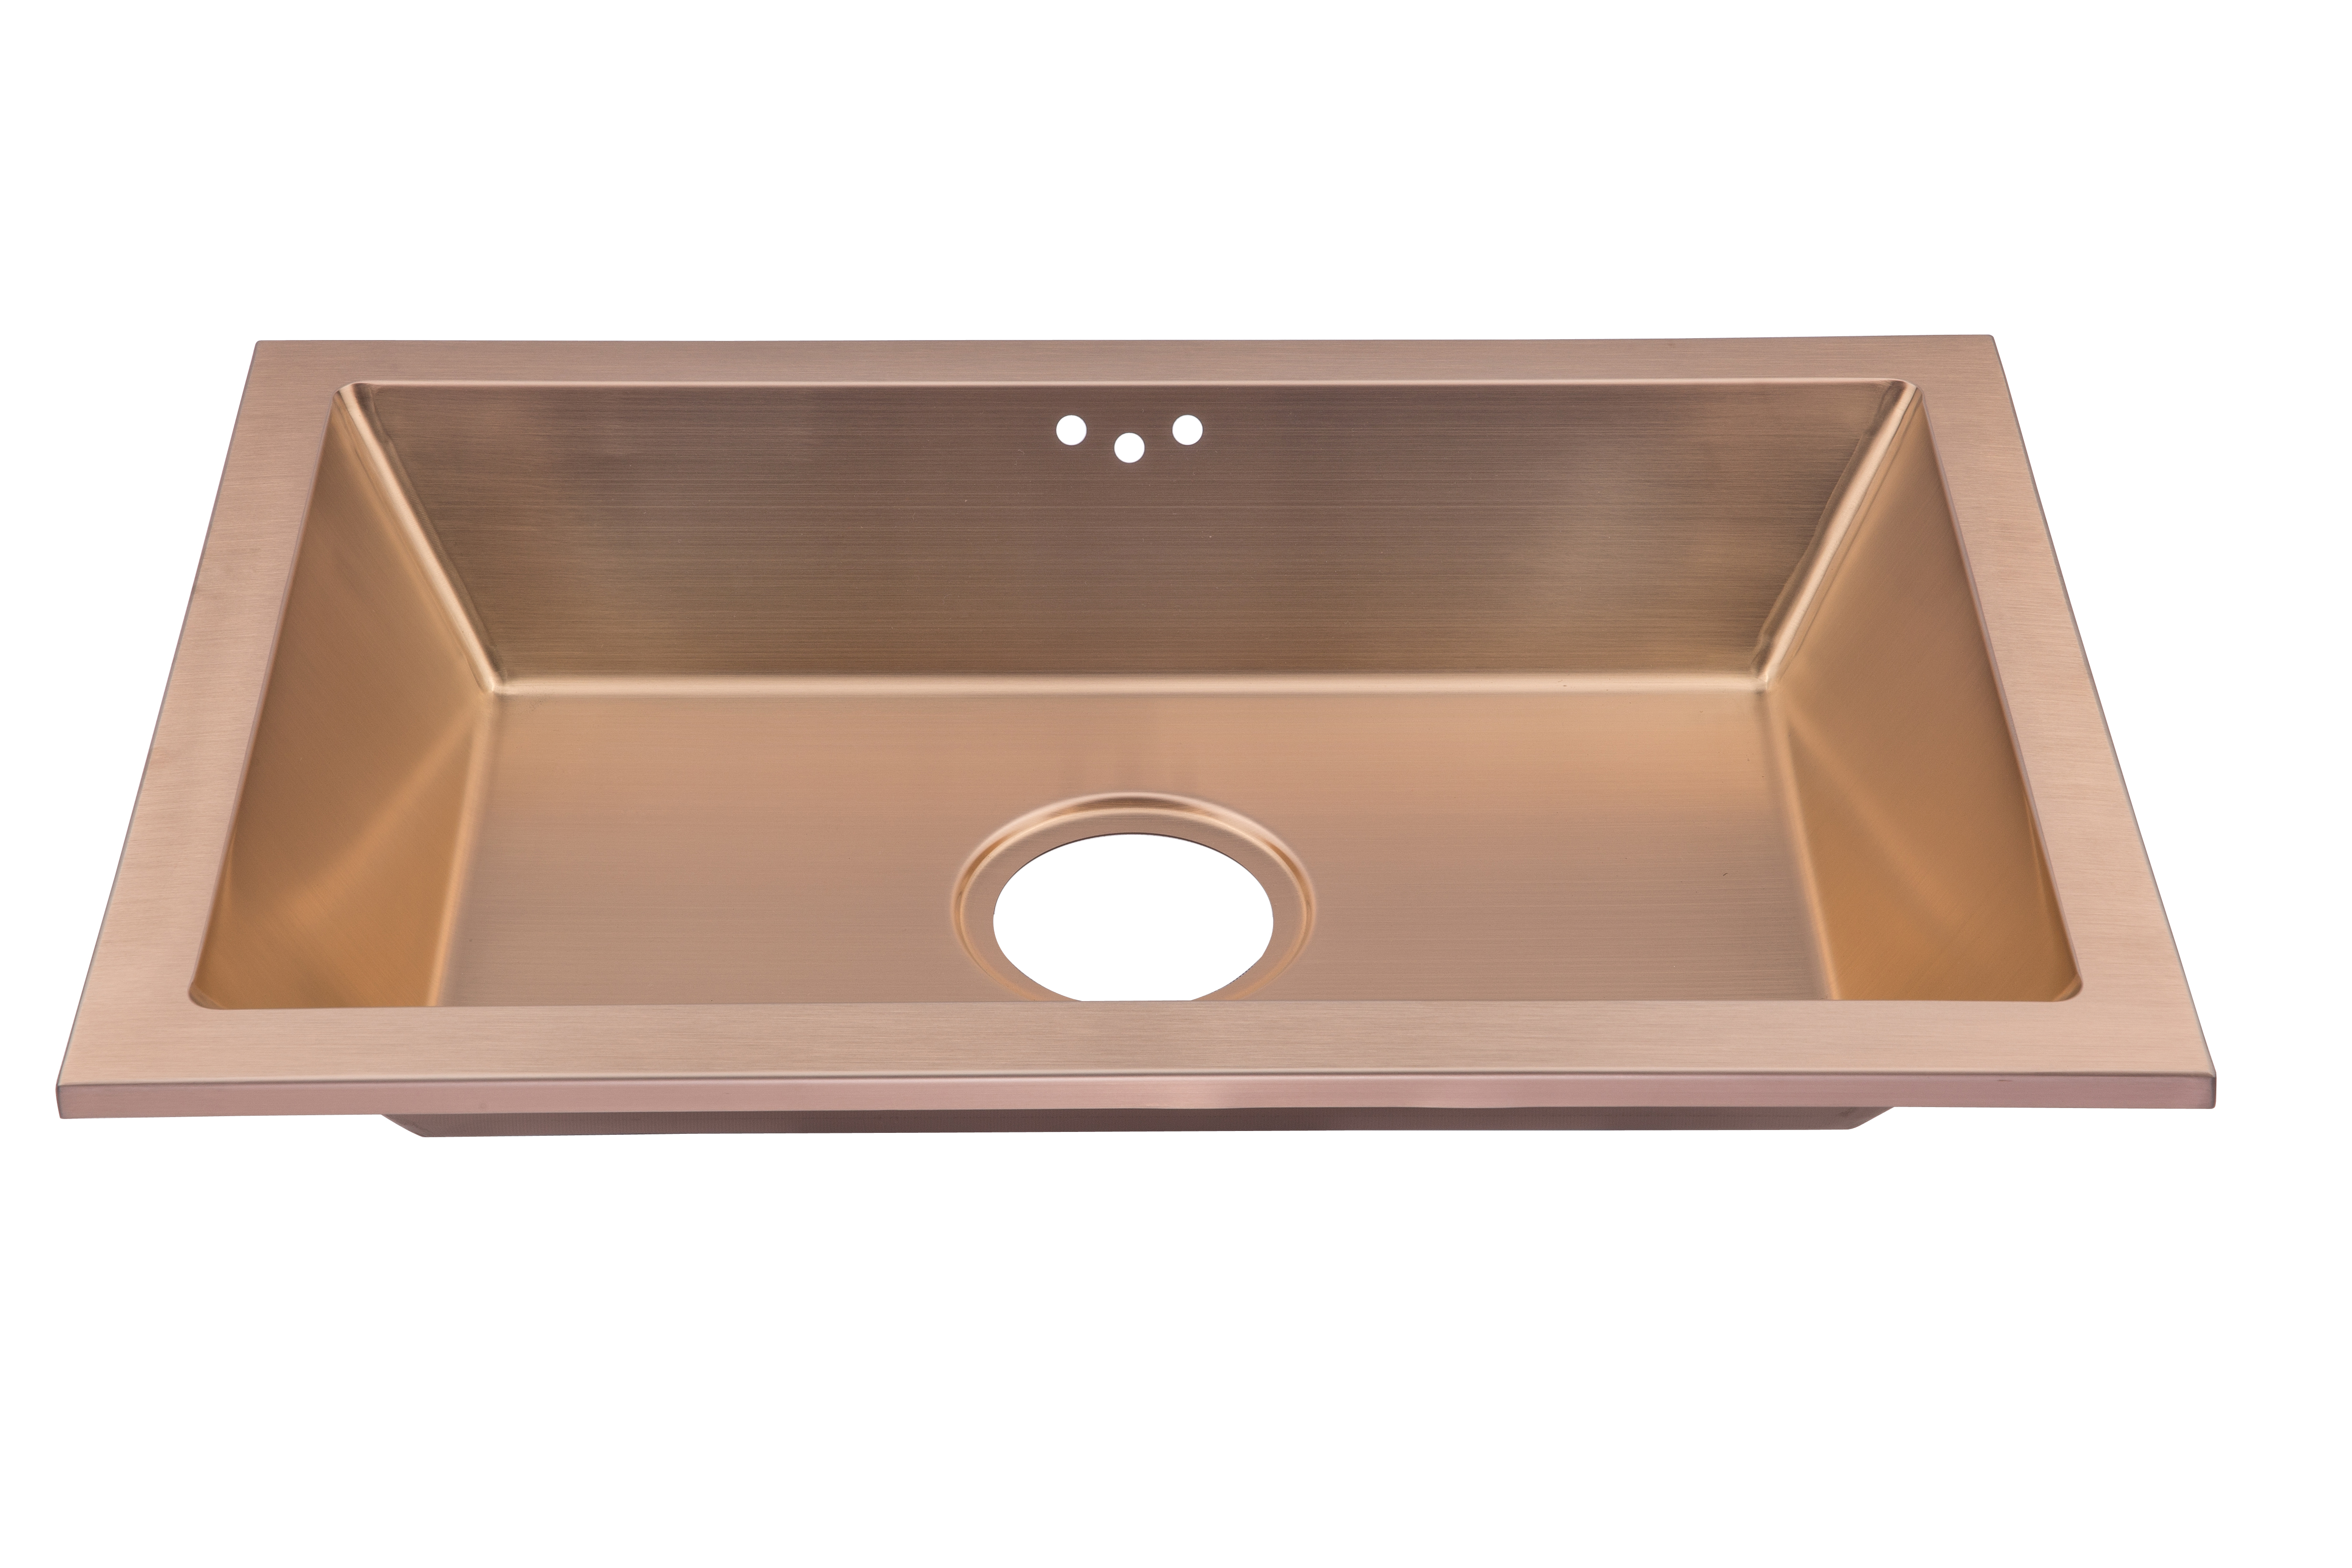 As360s 24 x x 4 18g single bowl dual mount legend for Colored stainless steel sinks